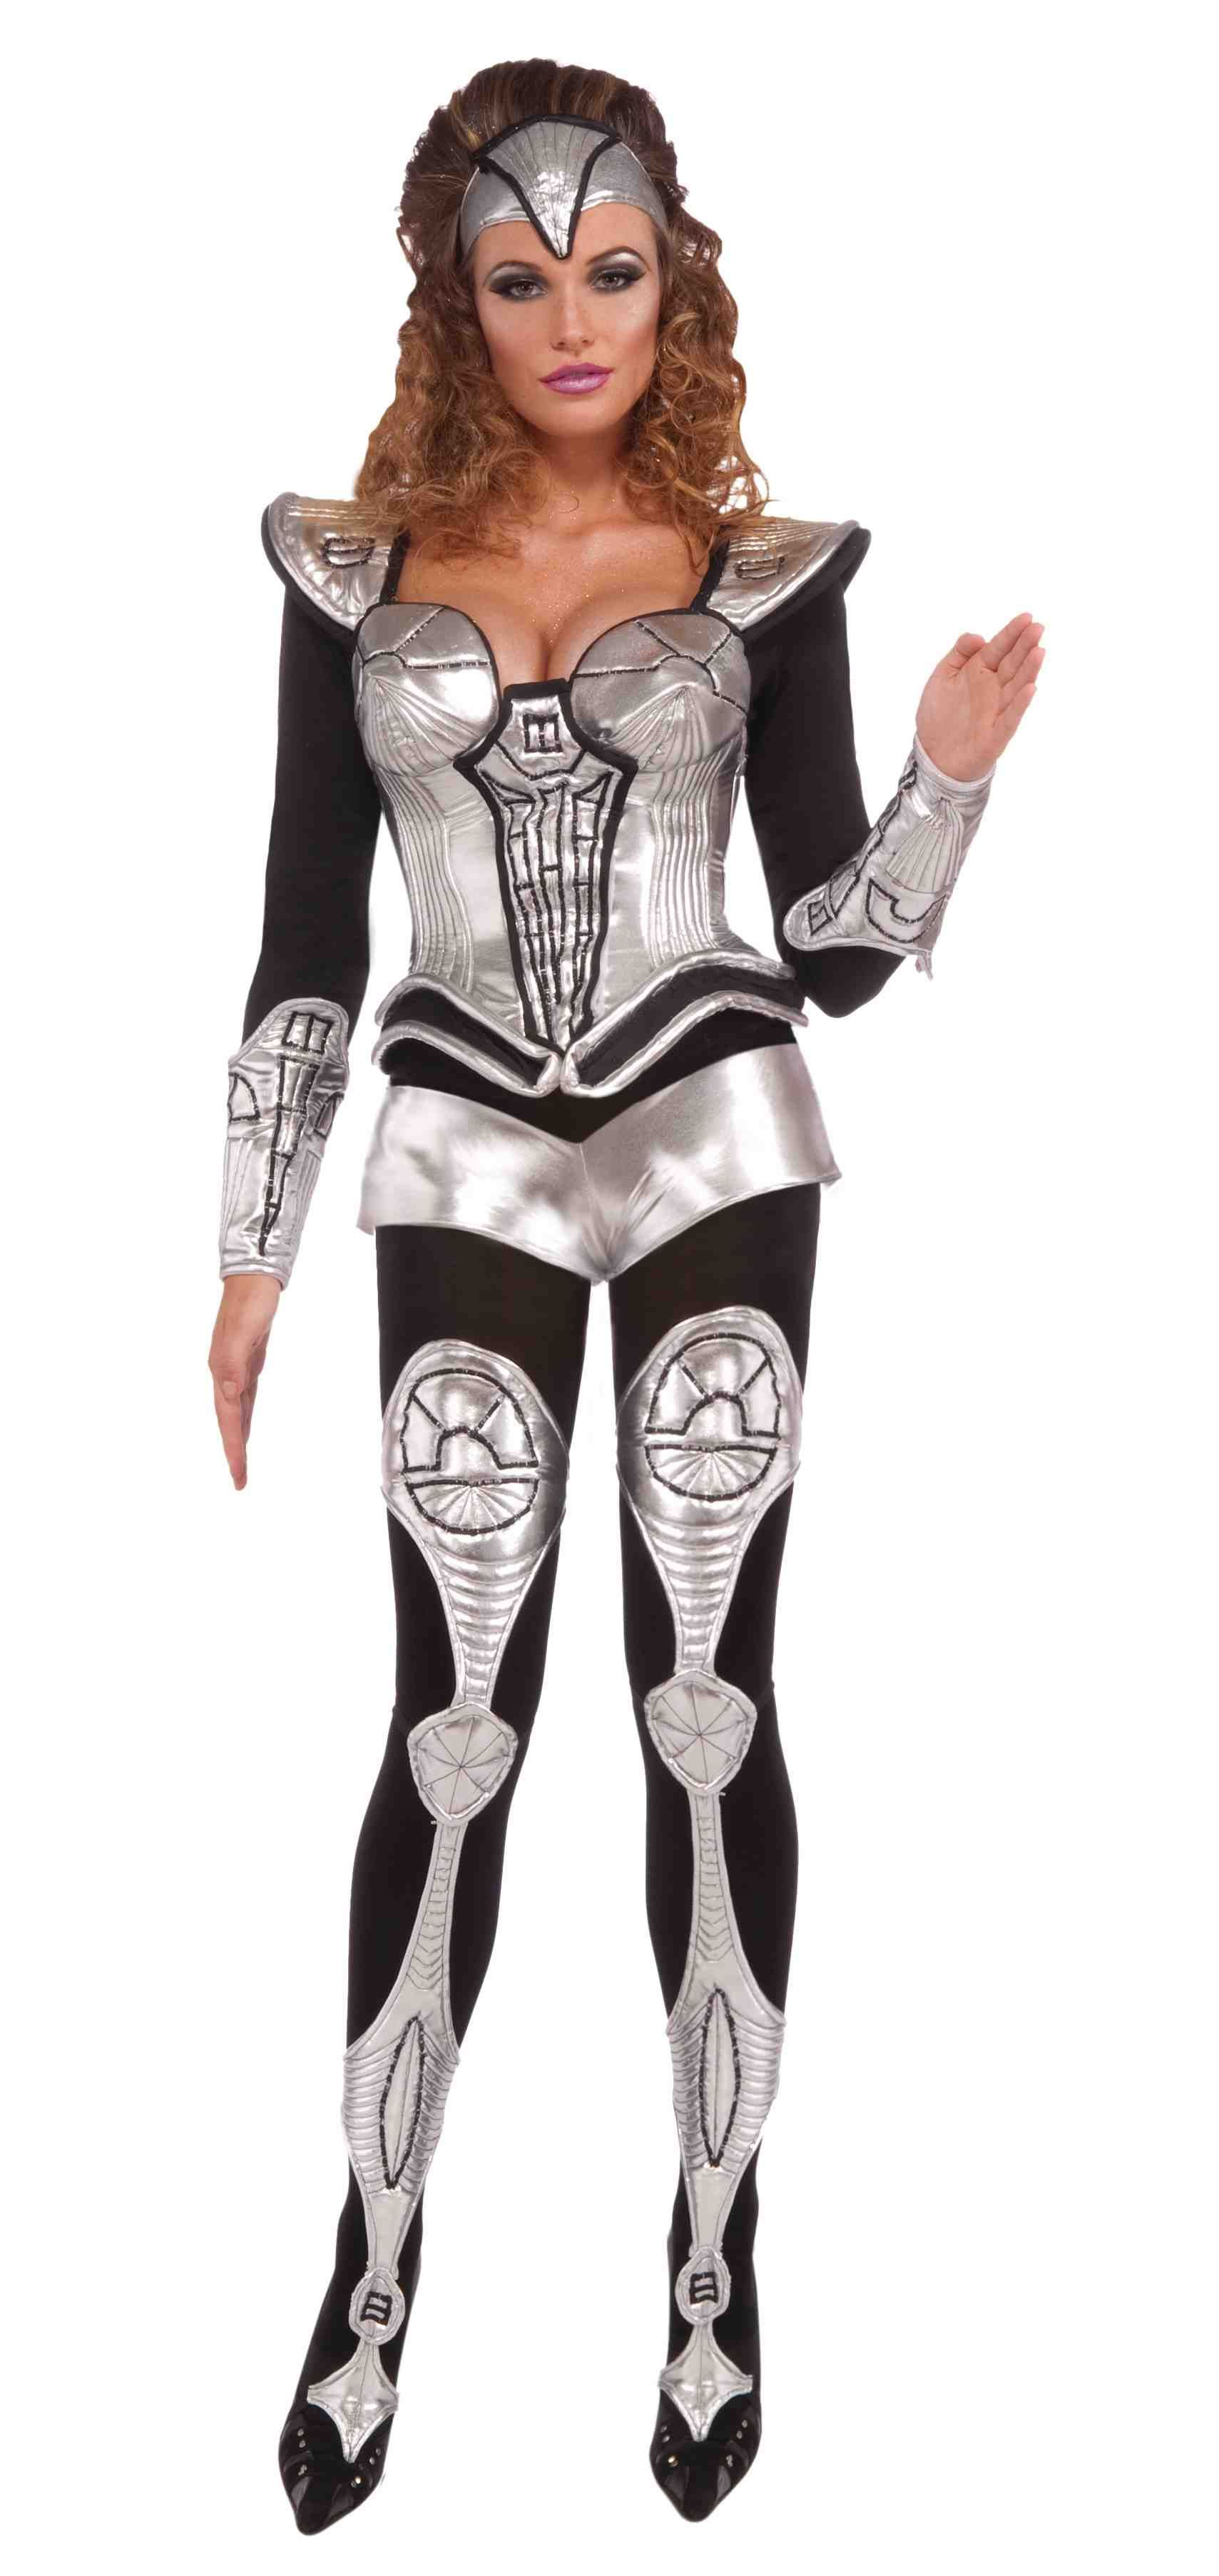 Home gt gt cleopatra costumes gt gt jewel of the nile egyptian adult - Sexy Cyborg Womens Costume